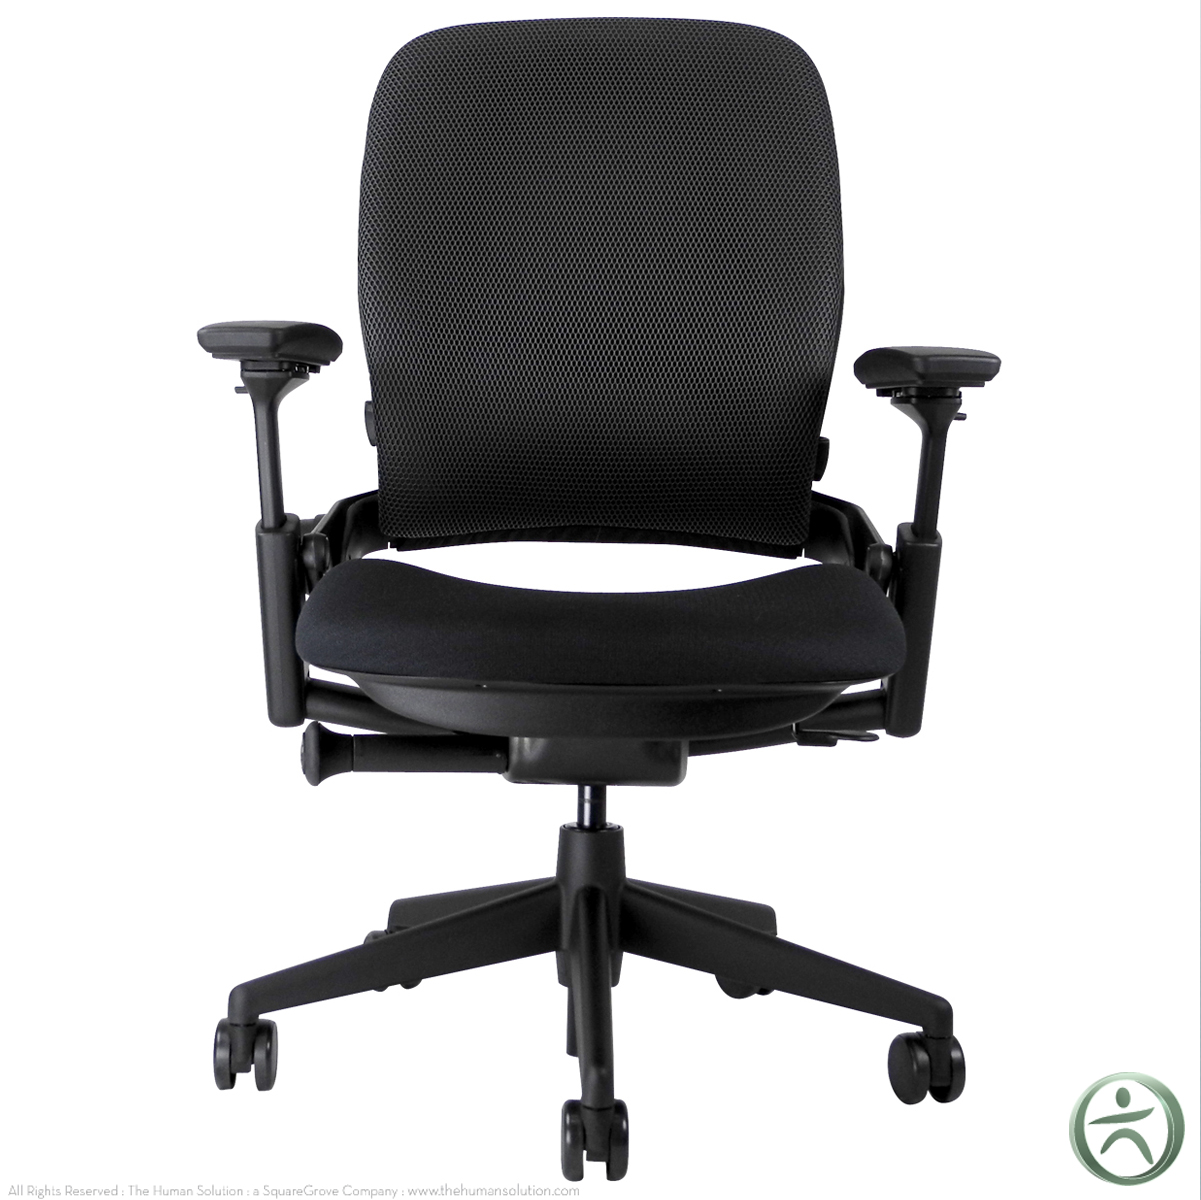 Shop steelcase leap chairs with 3d knit mesh back for Steelcase leap